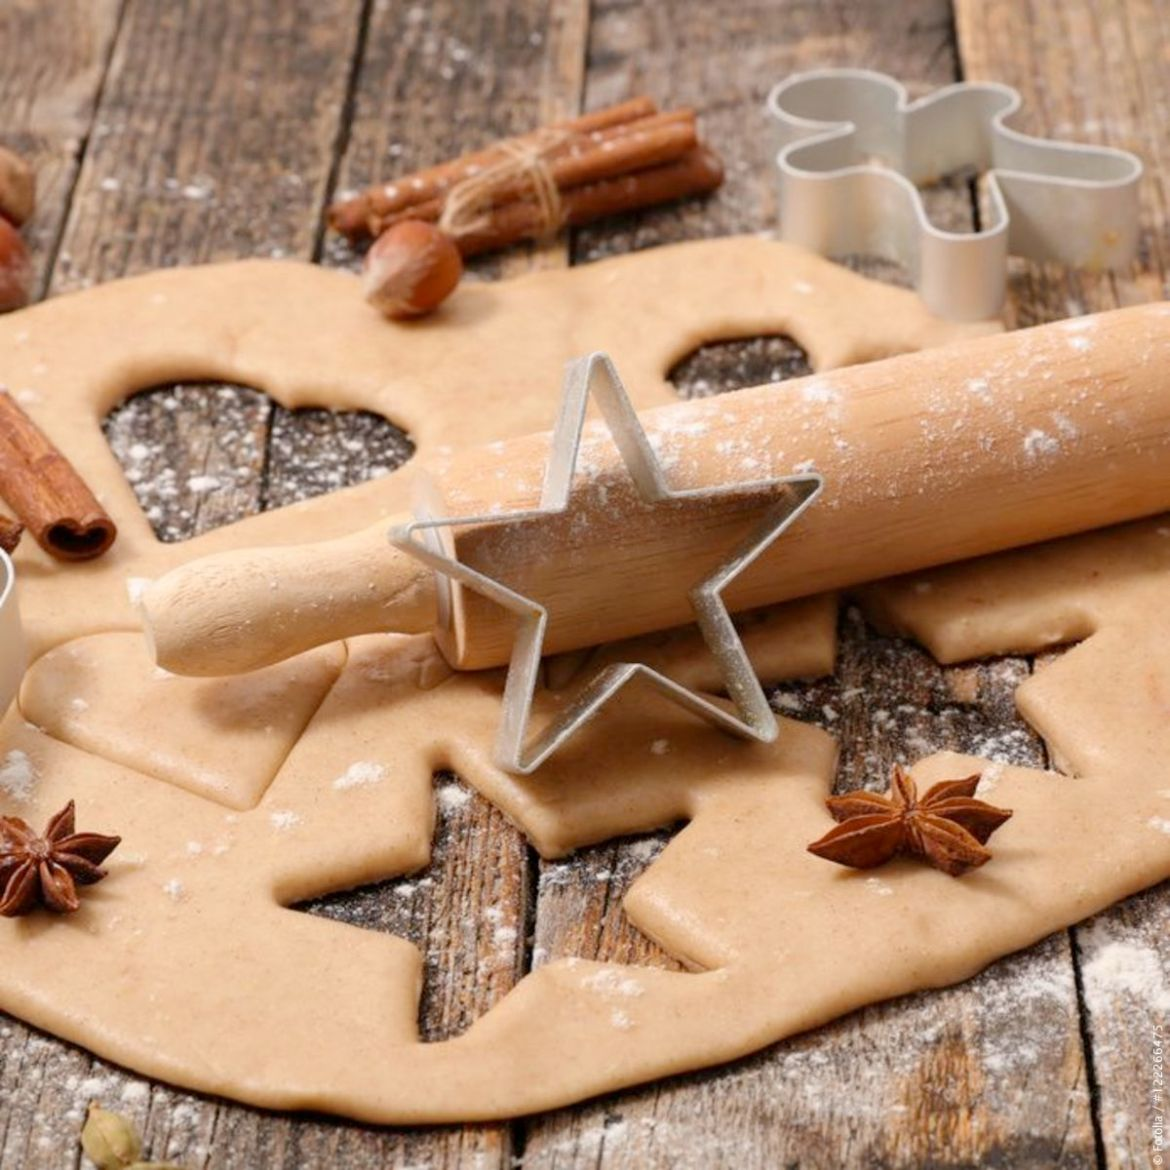 Christmas cookies being cut out with star-shaped cutter and a rolling pin